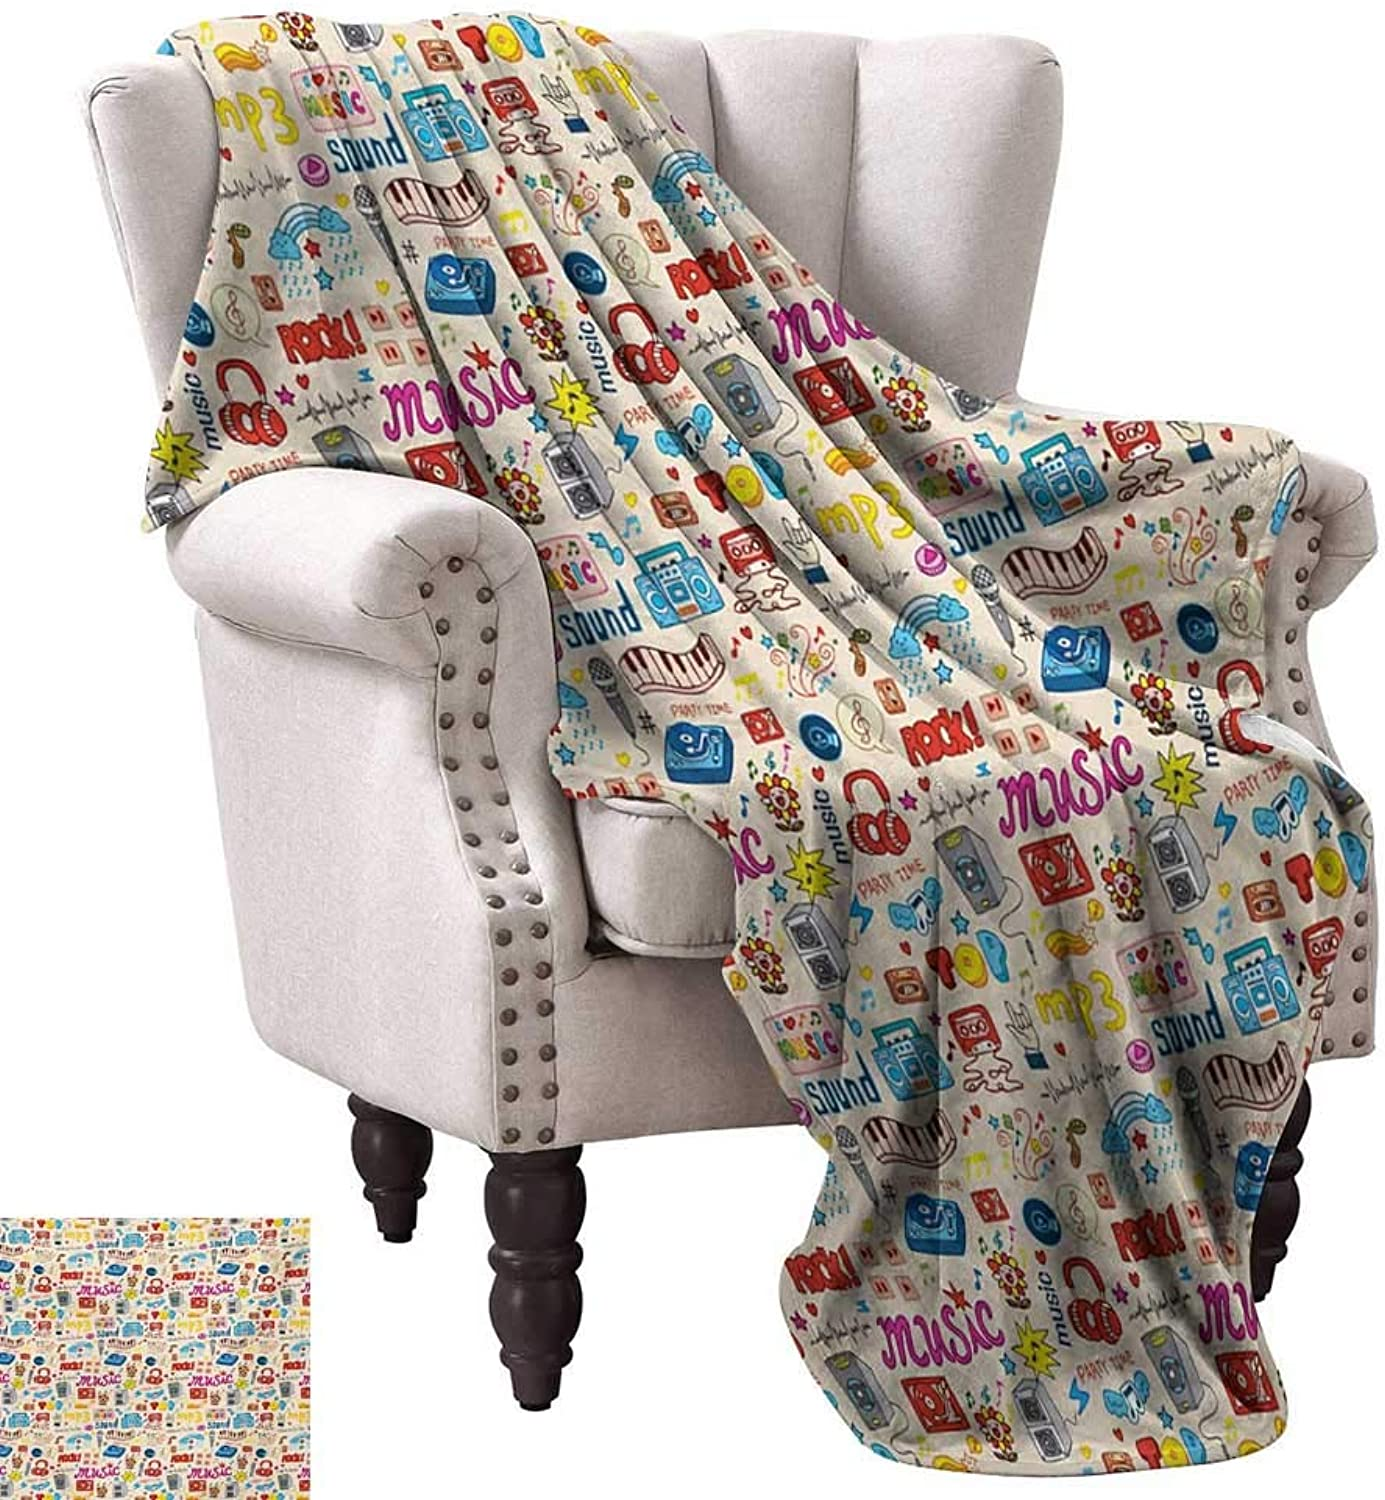 Anyangeight Weave Pattern Extra Long Blanket,Retro Pop Art Style Music Icons Casette Tapes Records Rock Headphones DJ Kids Image 70 x60 ,Super Soft and Comfortable,Suitable for Sofas,Chairs,beds